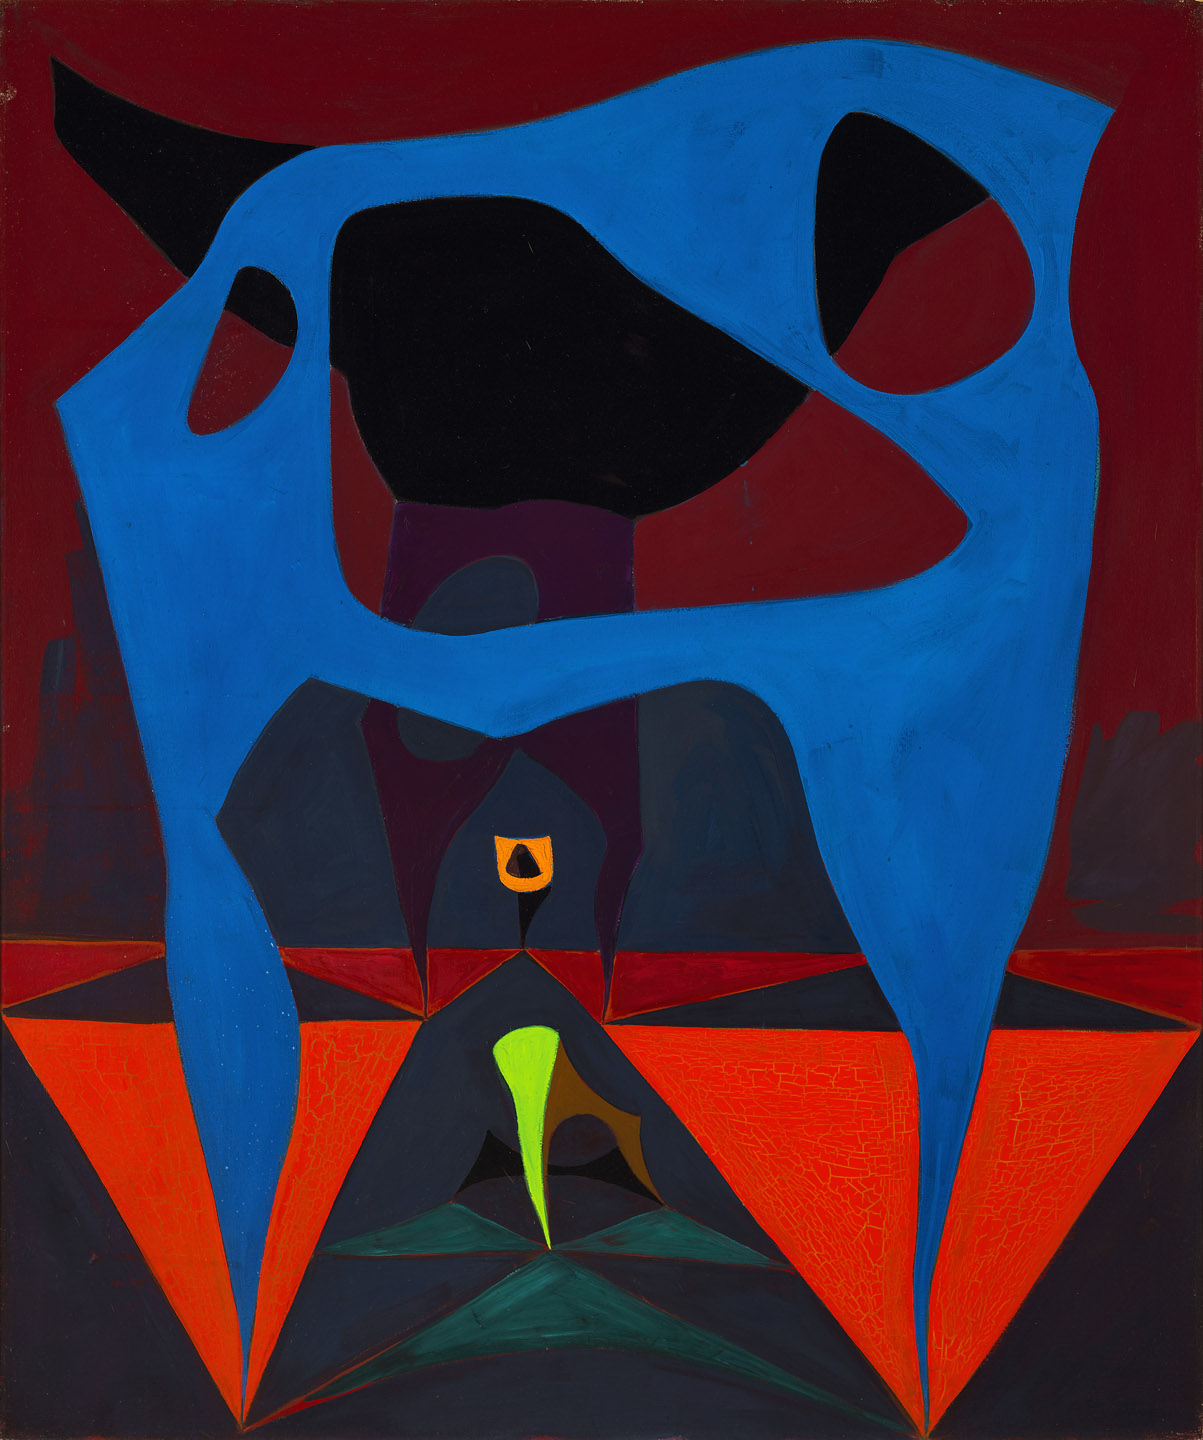 Lorser Feitelson (1898-1978)   Untitled, Magical Forms (study) , 1950 oil on canvas  36 x 30 inches; 91.4 x 76.2 centimeters